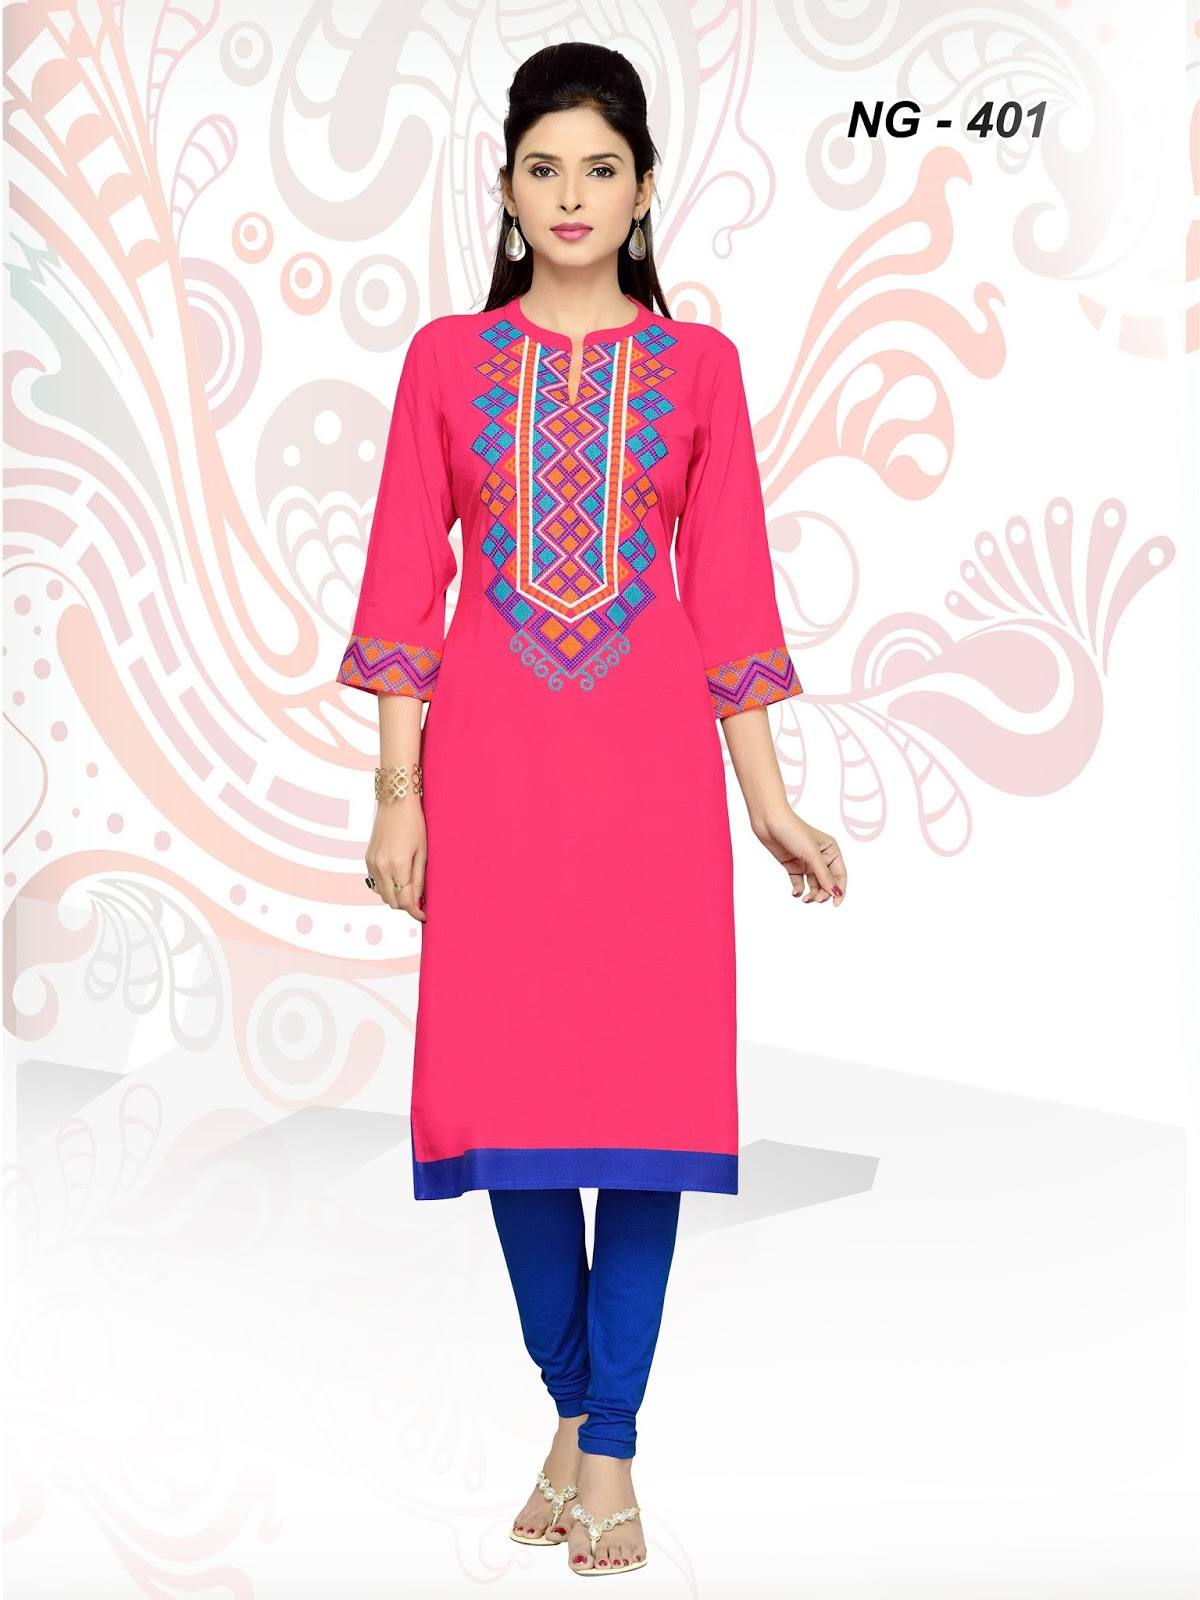 Nice Girl Cross Stich – New Plain Simple Stylish Causal Cotton Kurti